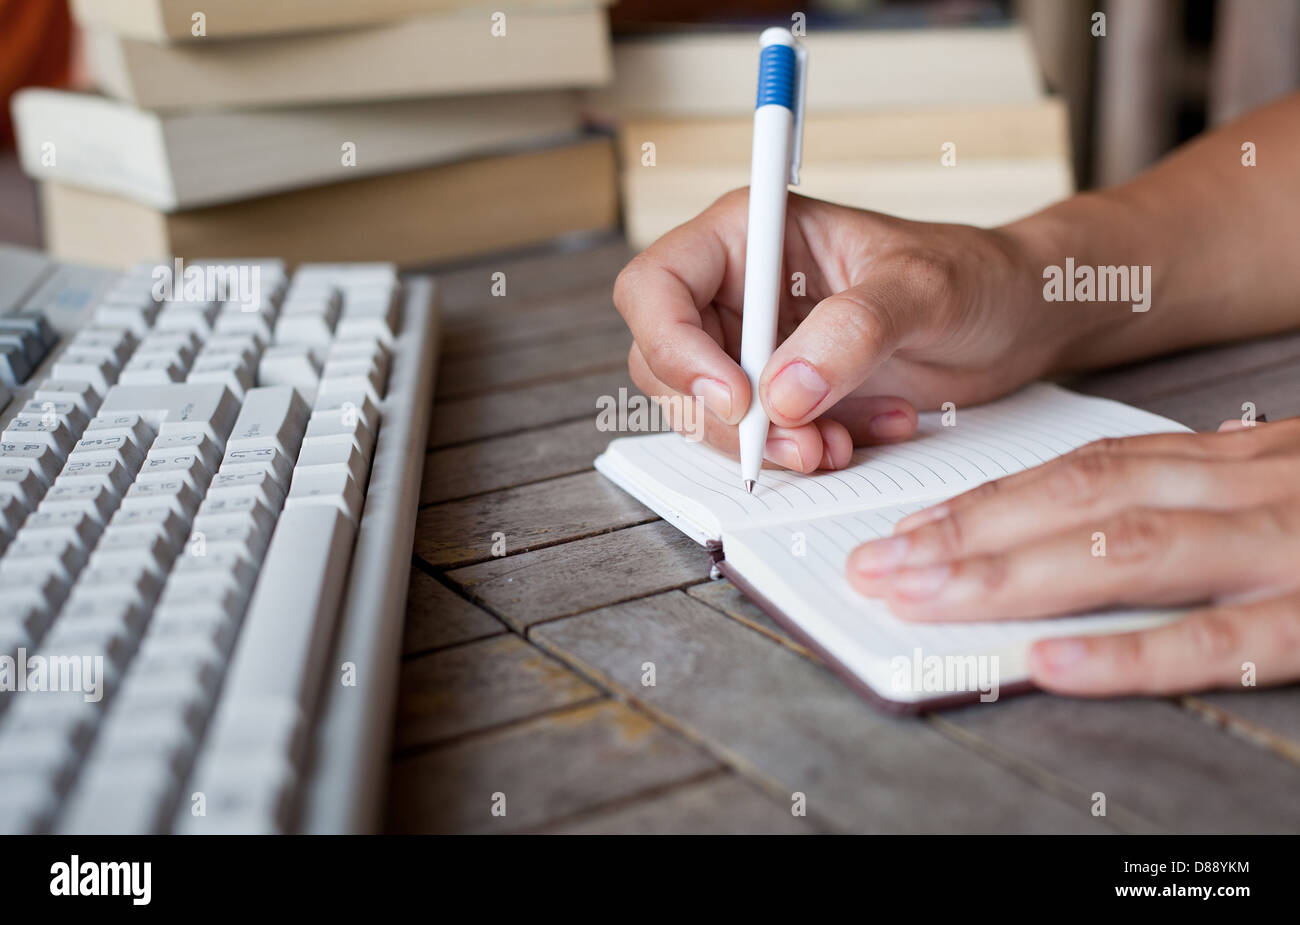 abstract hands writing in notepad, education - Stock Image